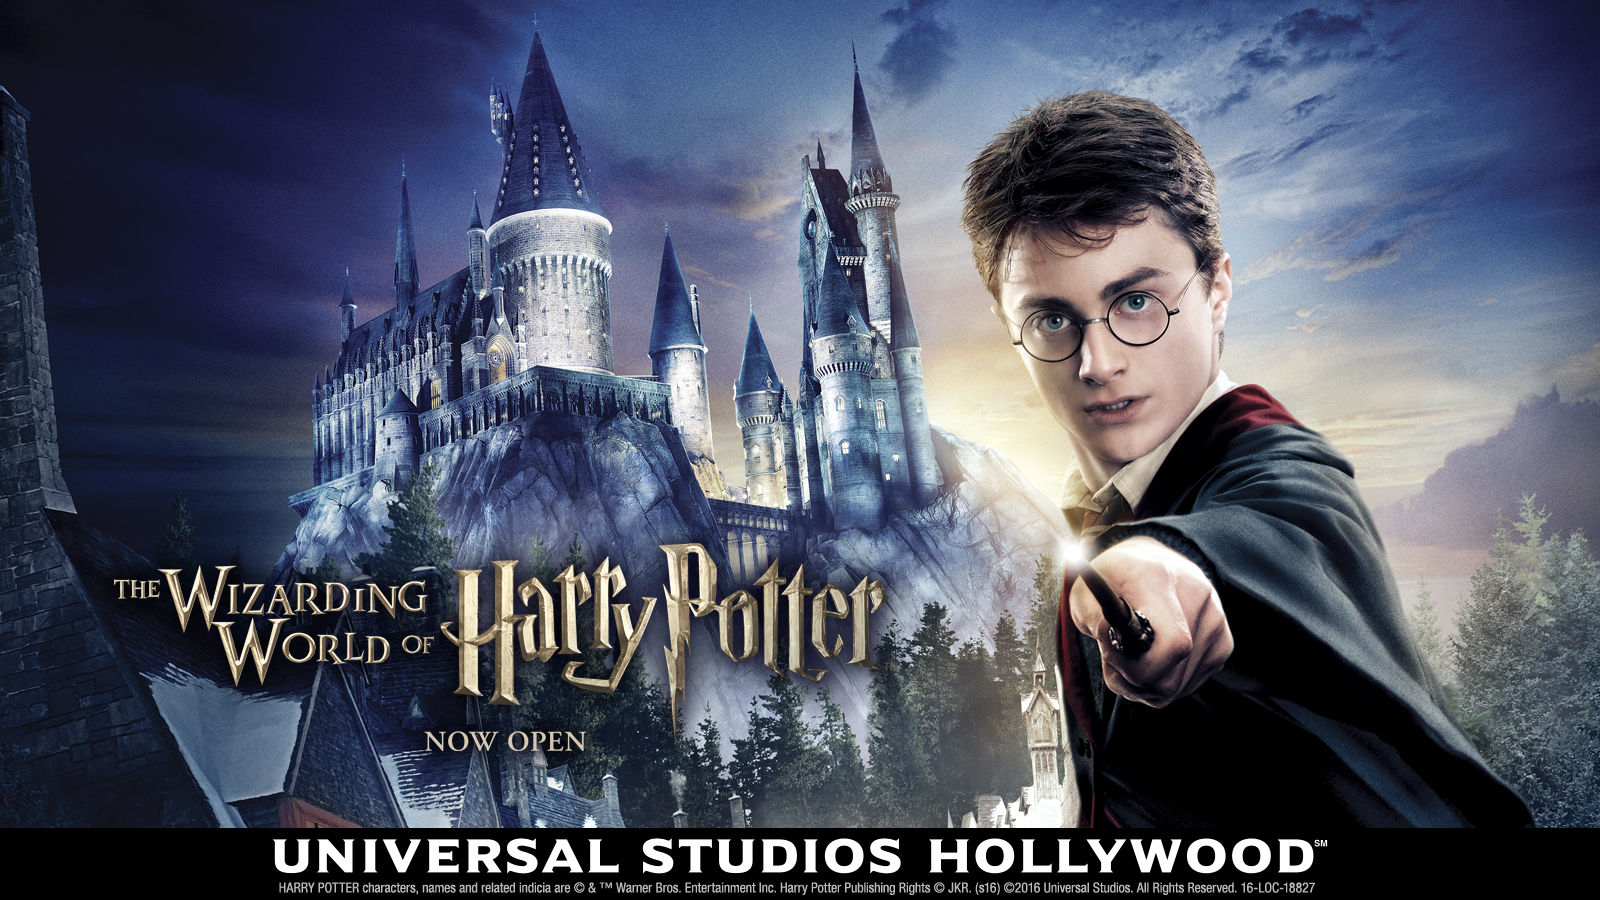 Universal Studios - Harry Potter